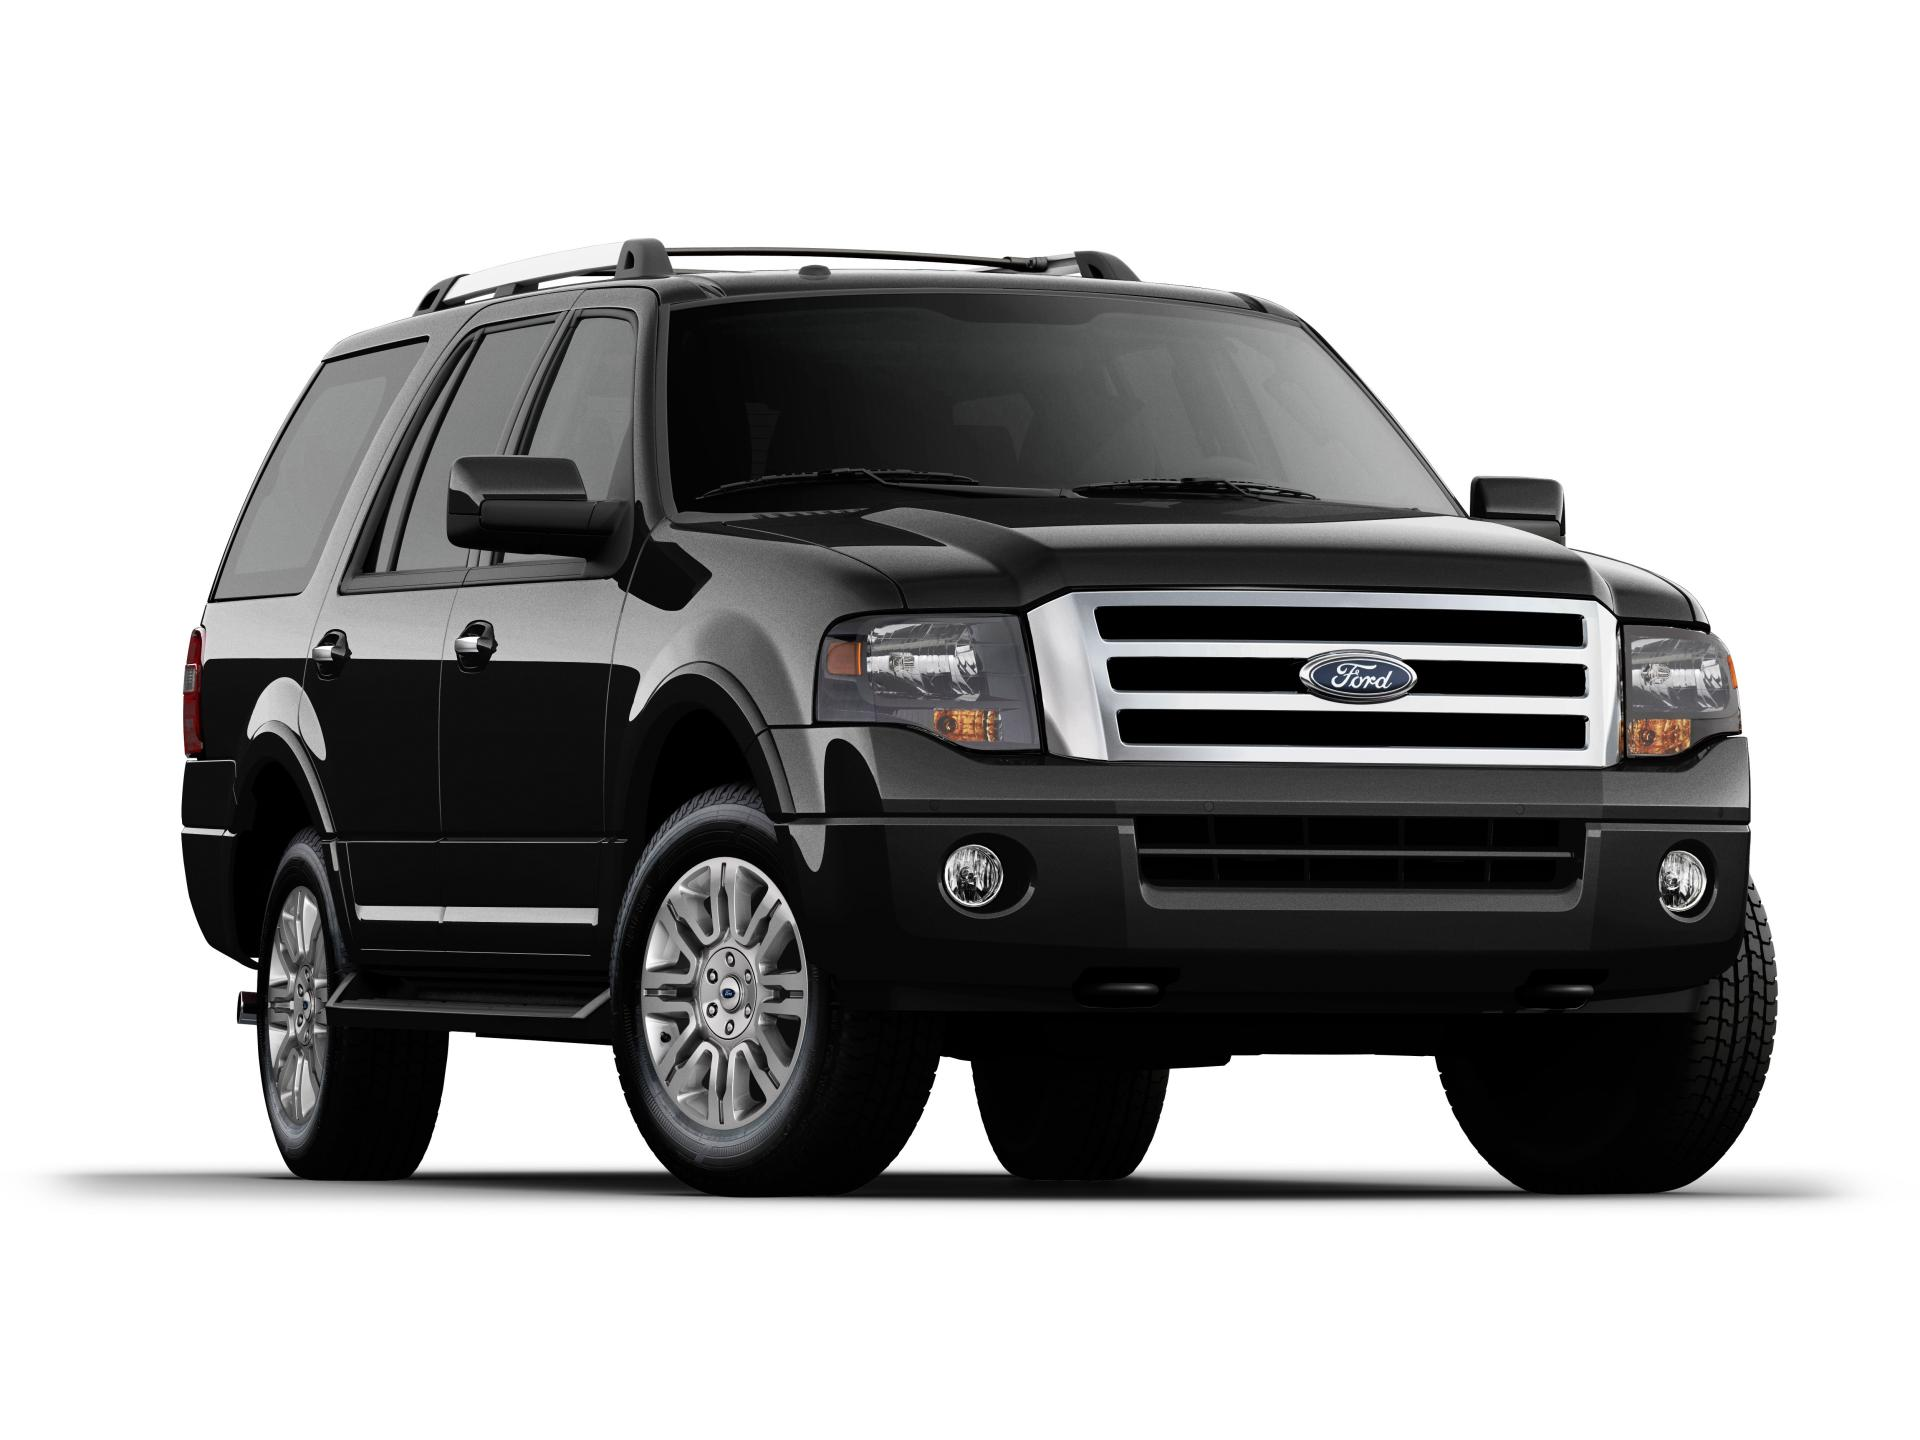 2014 ford expedition news and information conceptcarz com